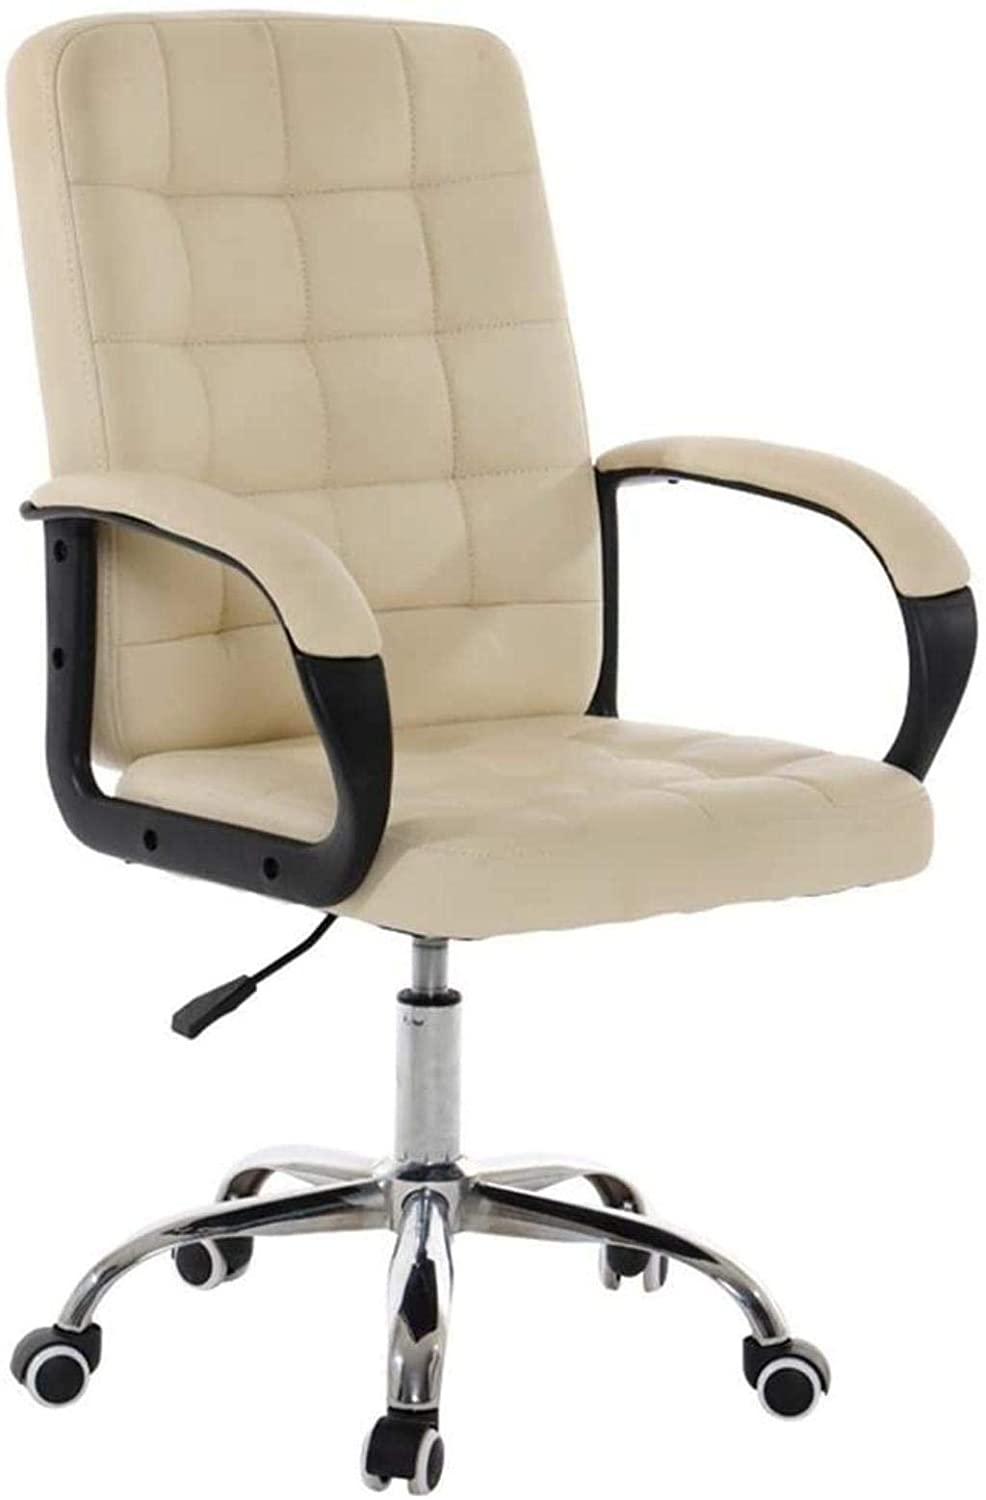 HTL Comfortable Lift Swivel Chair Office Chair Can Reduce Back Pain Air Lift Chair Height Can Adjustment and Lock Kneeling Chair,Beige